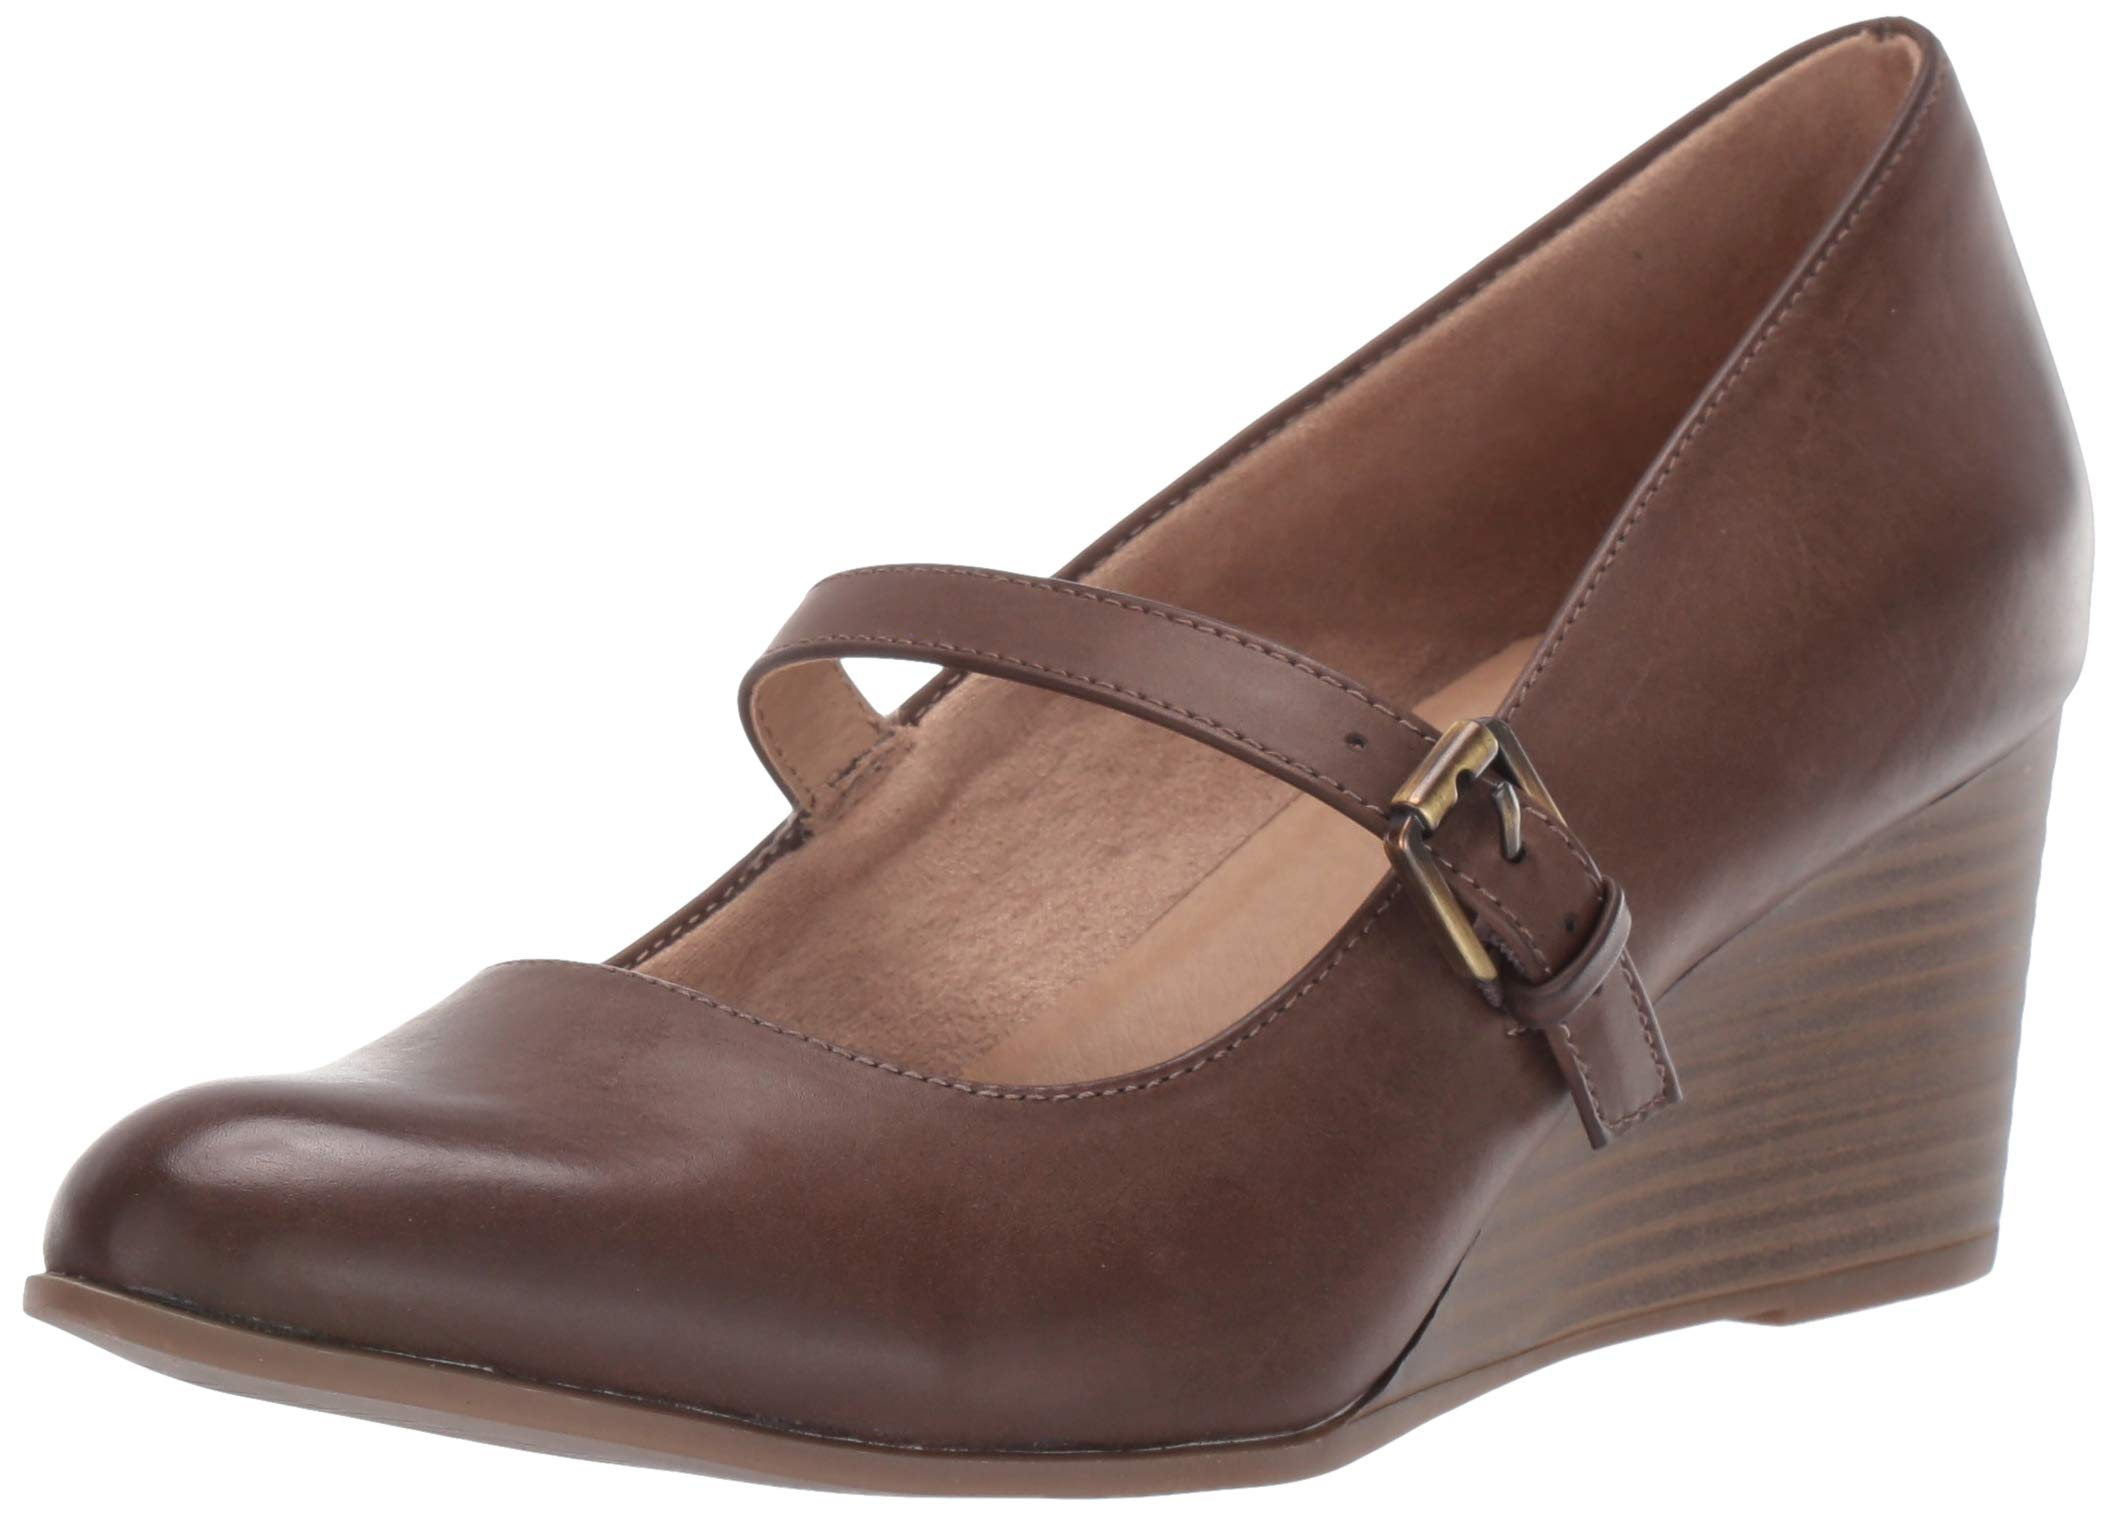 SOUL Naturalizer Women's Goldie Pump, Taupe Smooth, 6 M US by SOUL Naturalizer